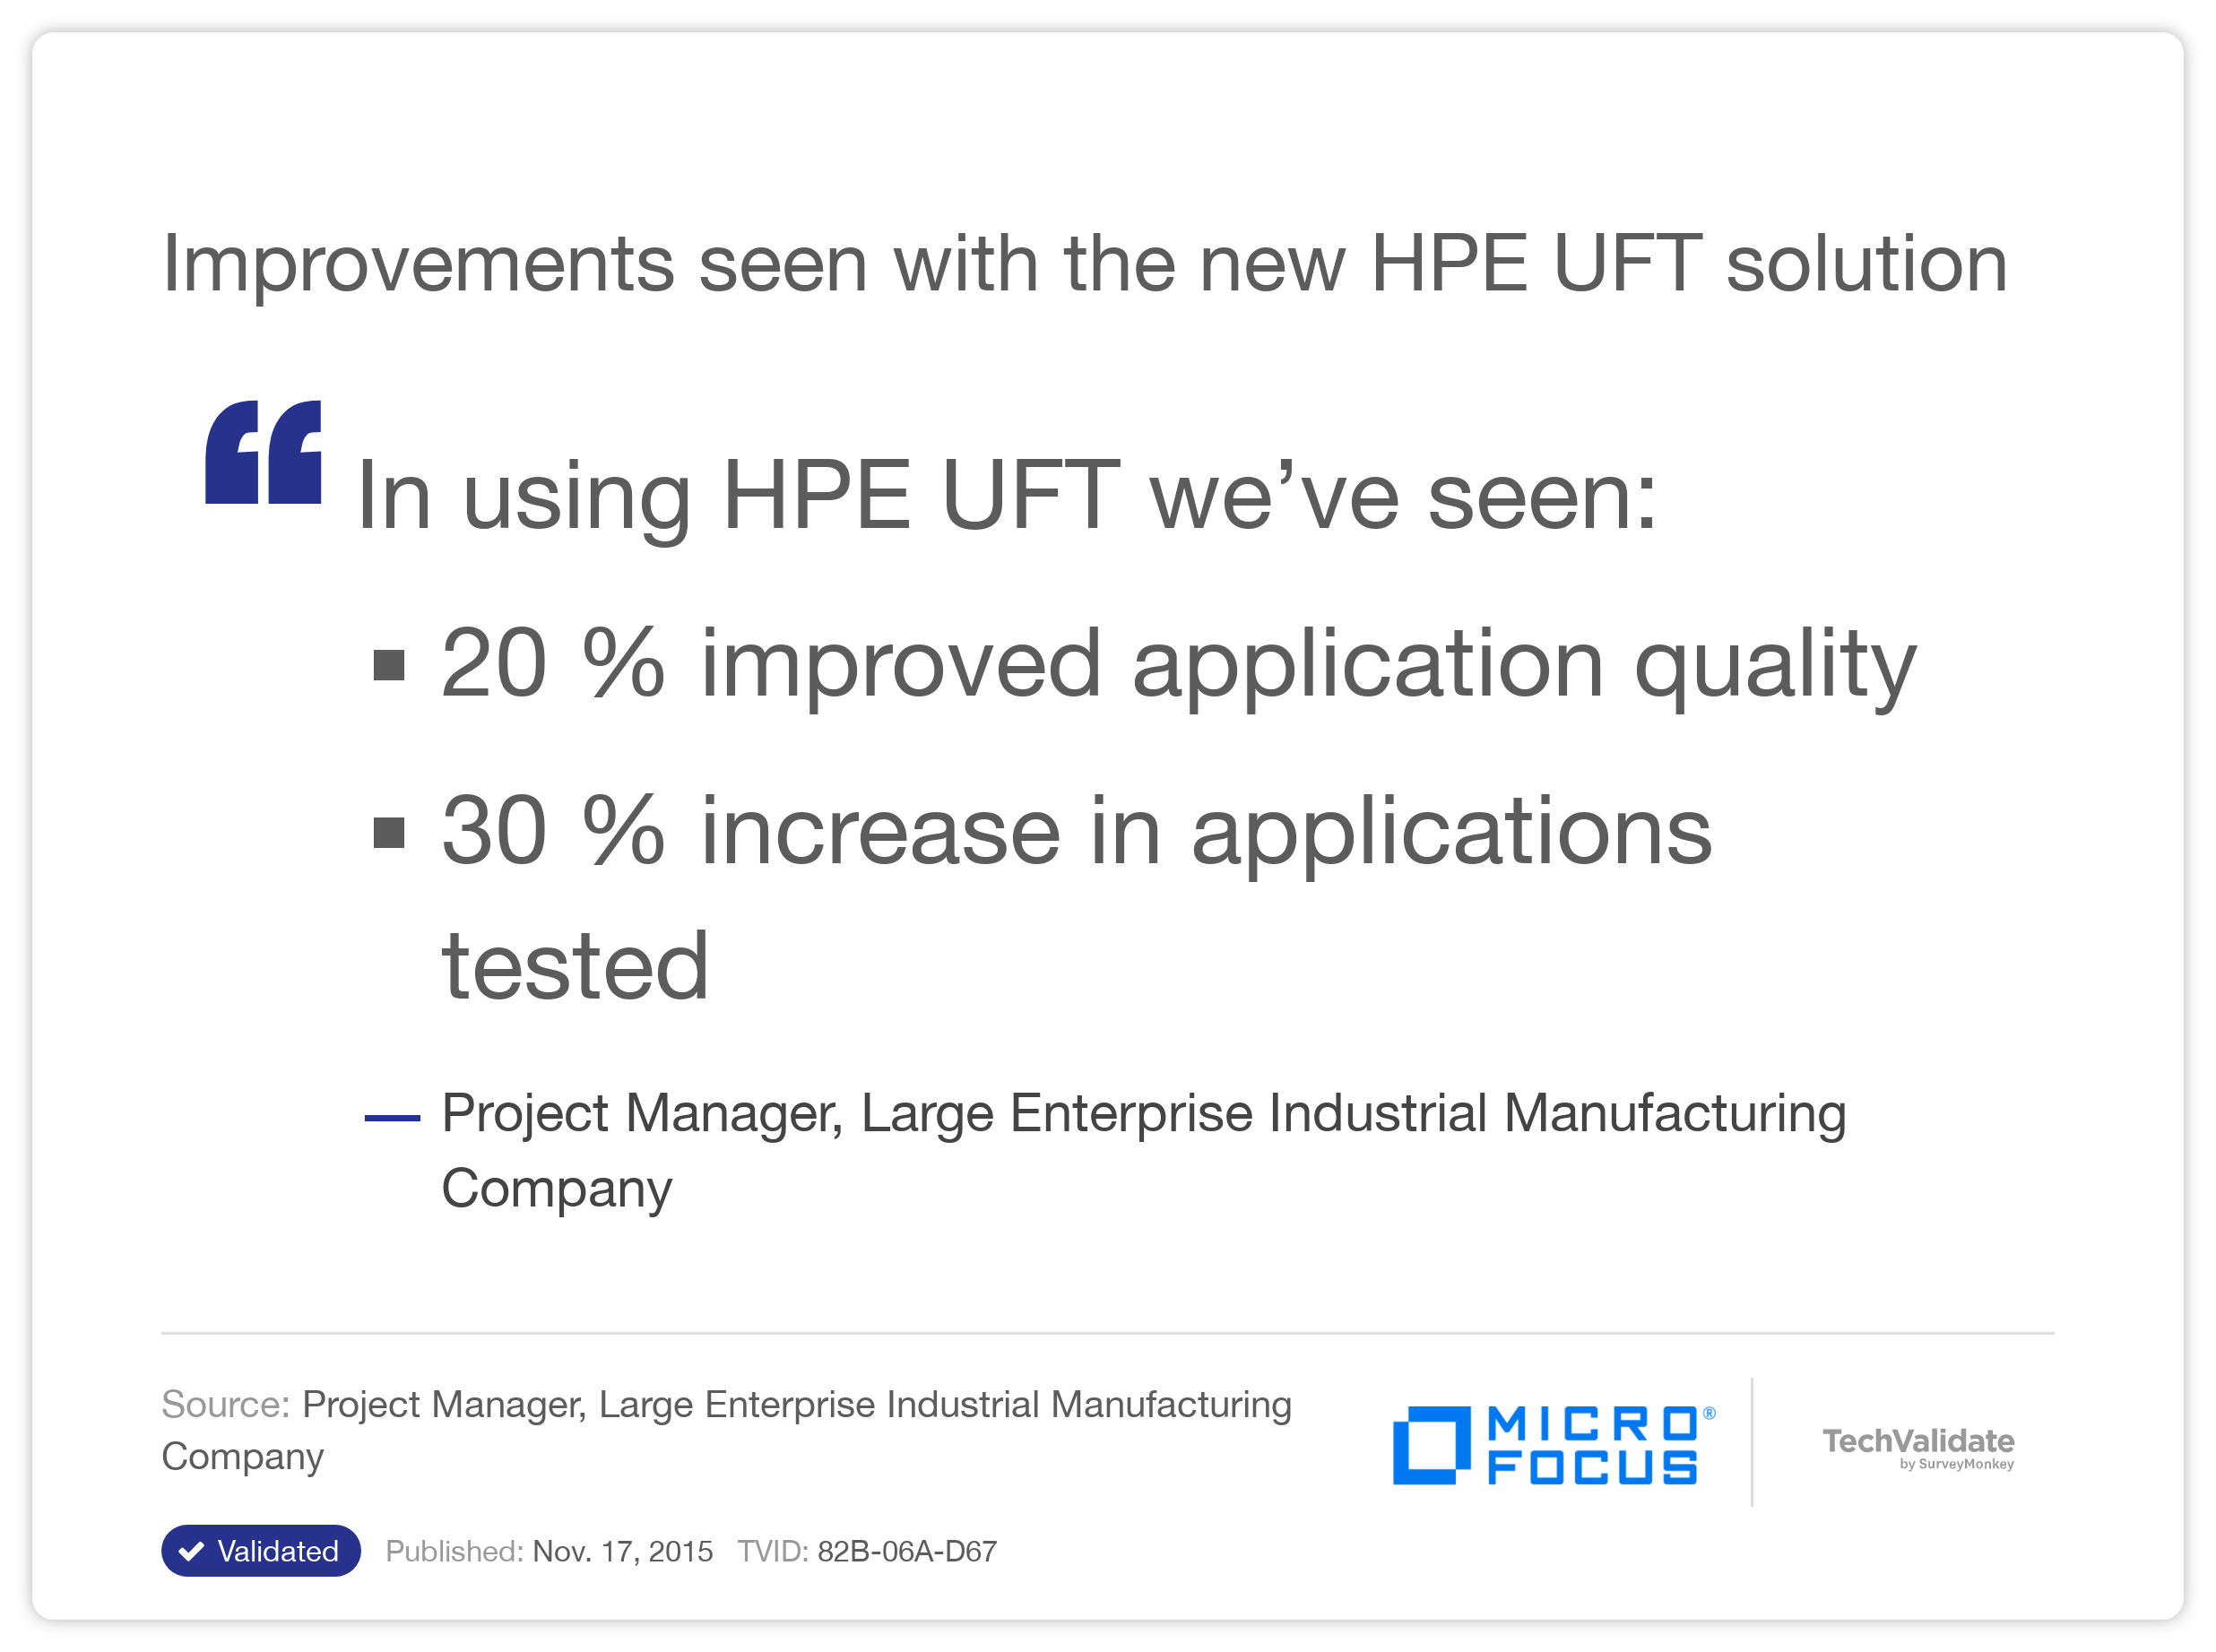 Improvements seen with the new HP UFT solution